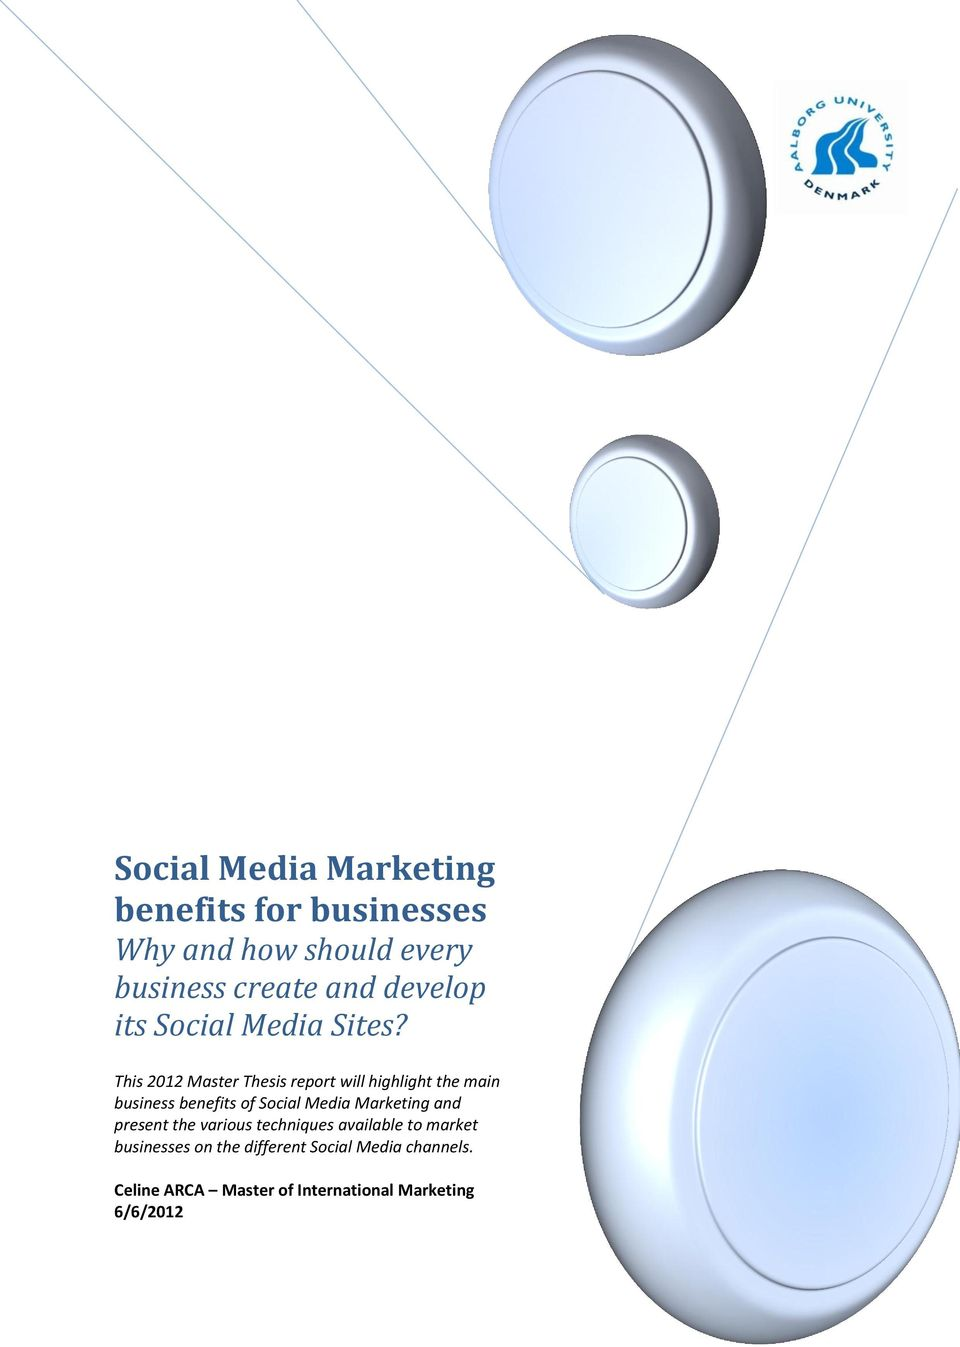 This 2012 Master Thesis report will highlight the main business benefits of Social